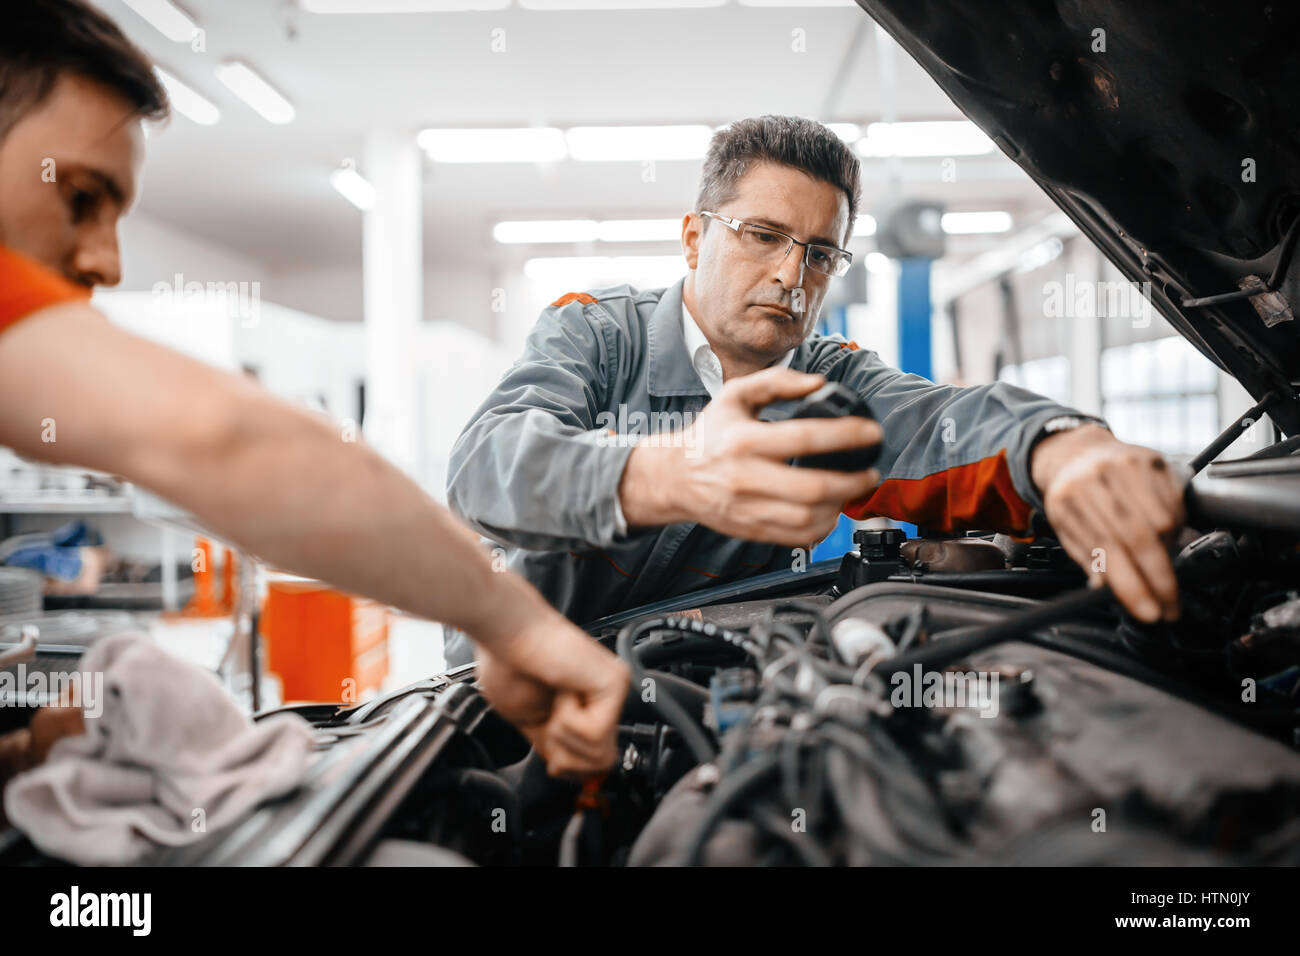 Car mechanics working on car maintenance - Stock Image